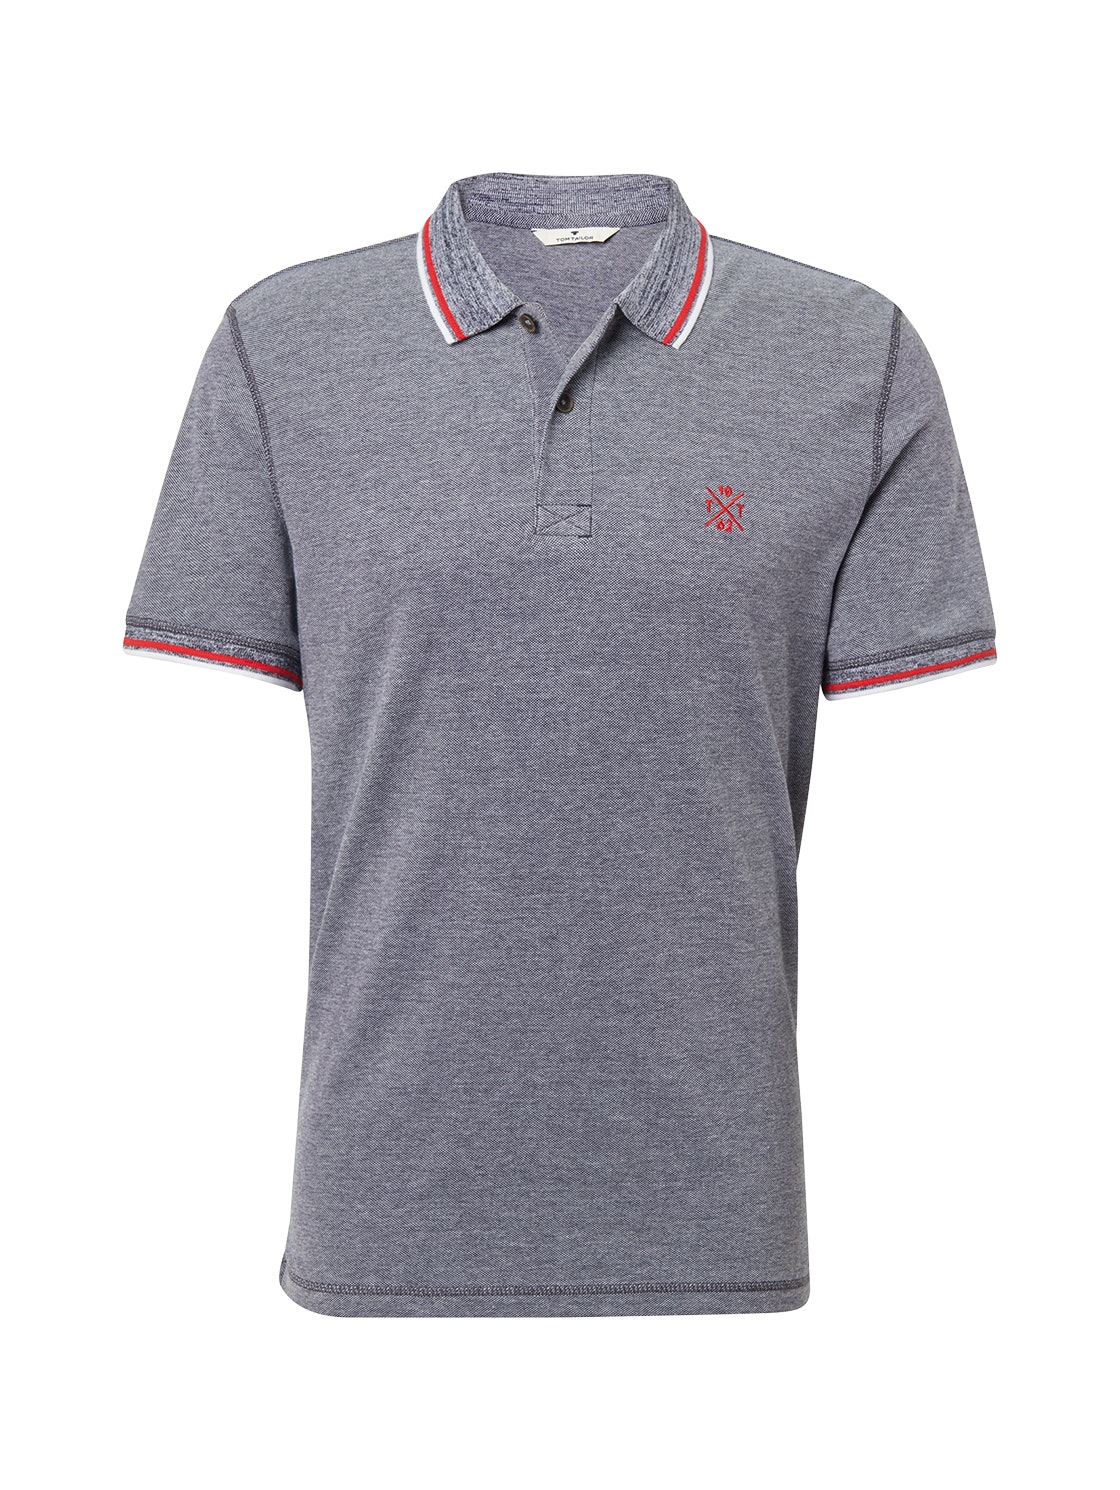 polo in two-tone fabric, navy white pique              Blue